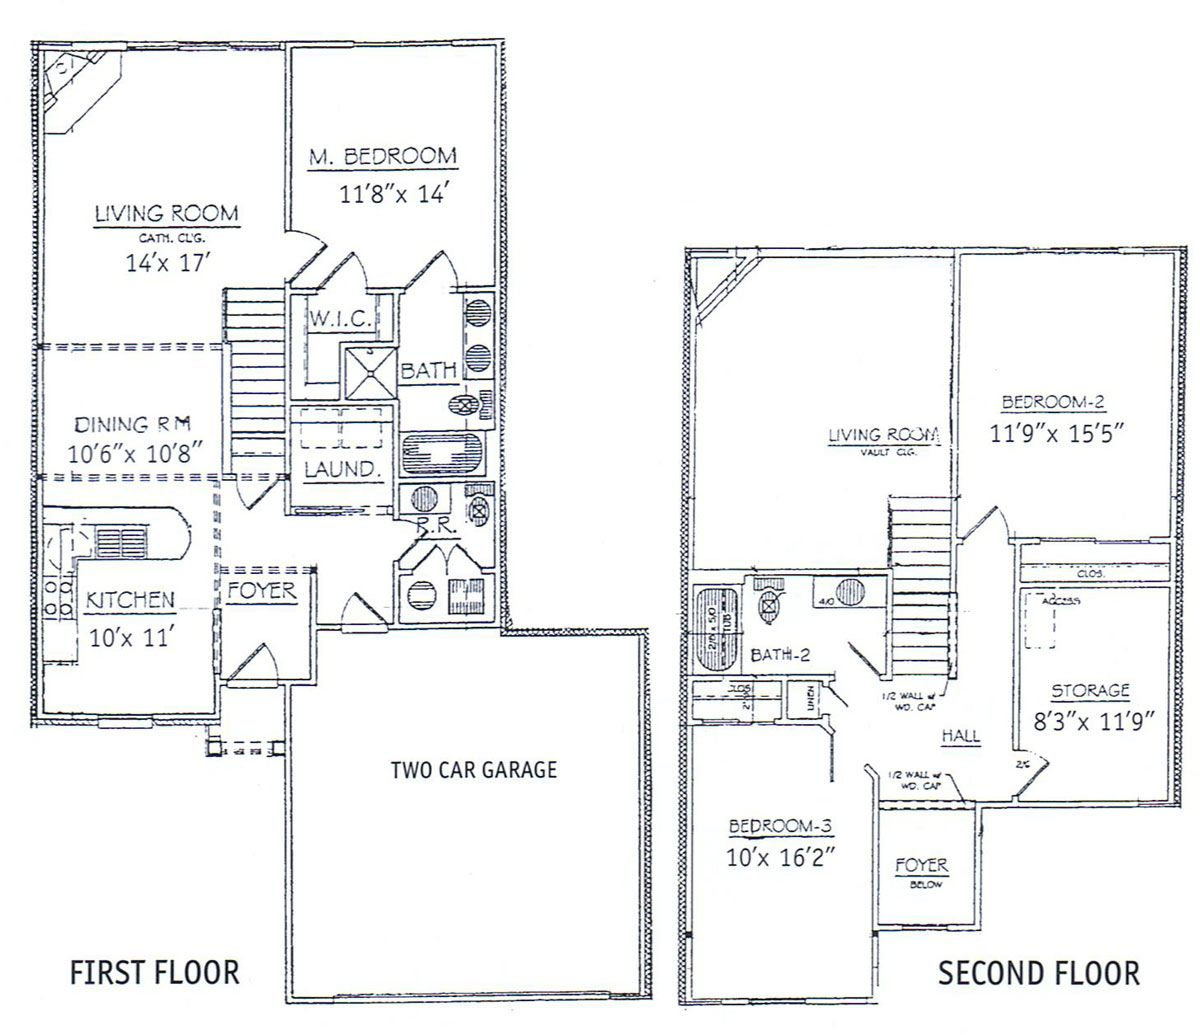 3 bedrooms floor plans 2 story bdrm basement the two 2 story home designs